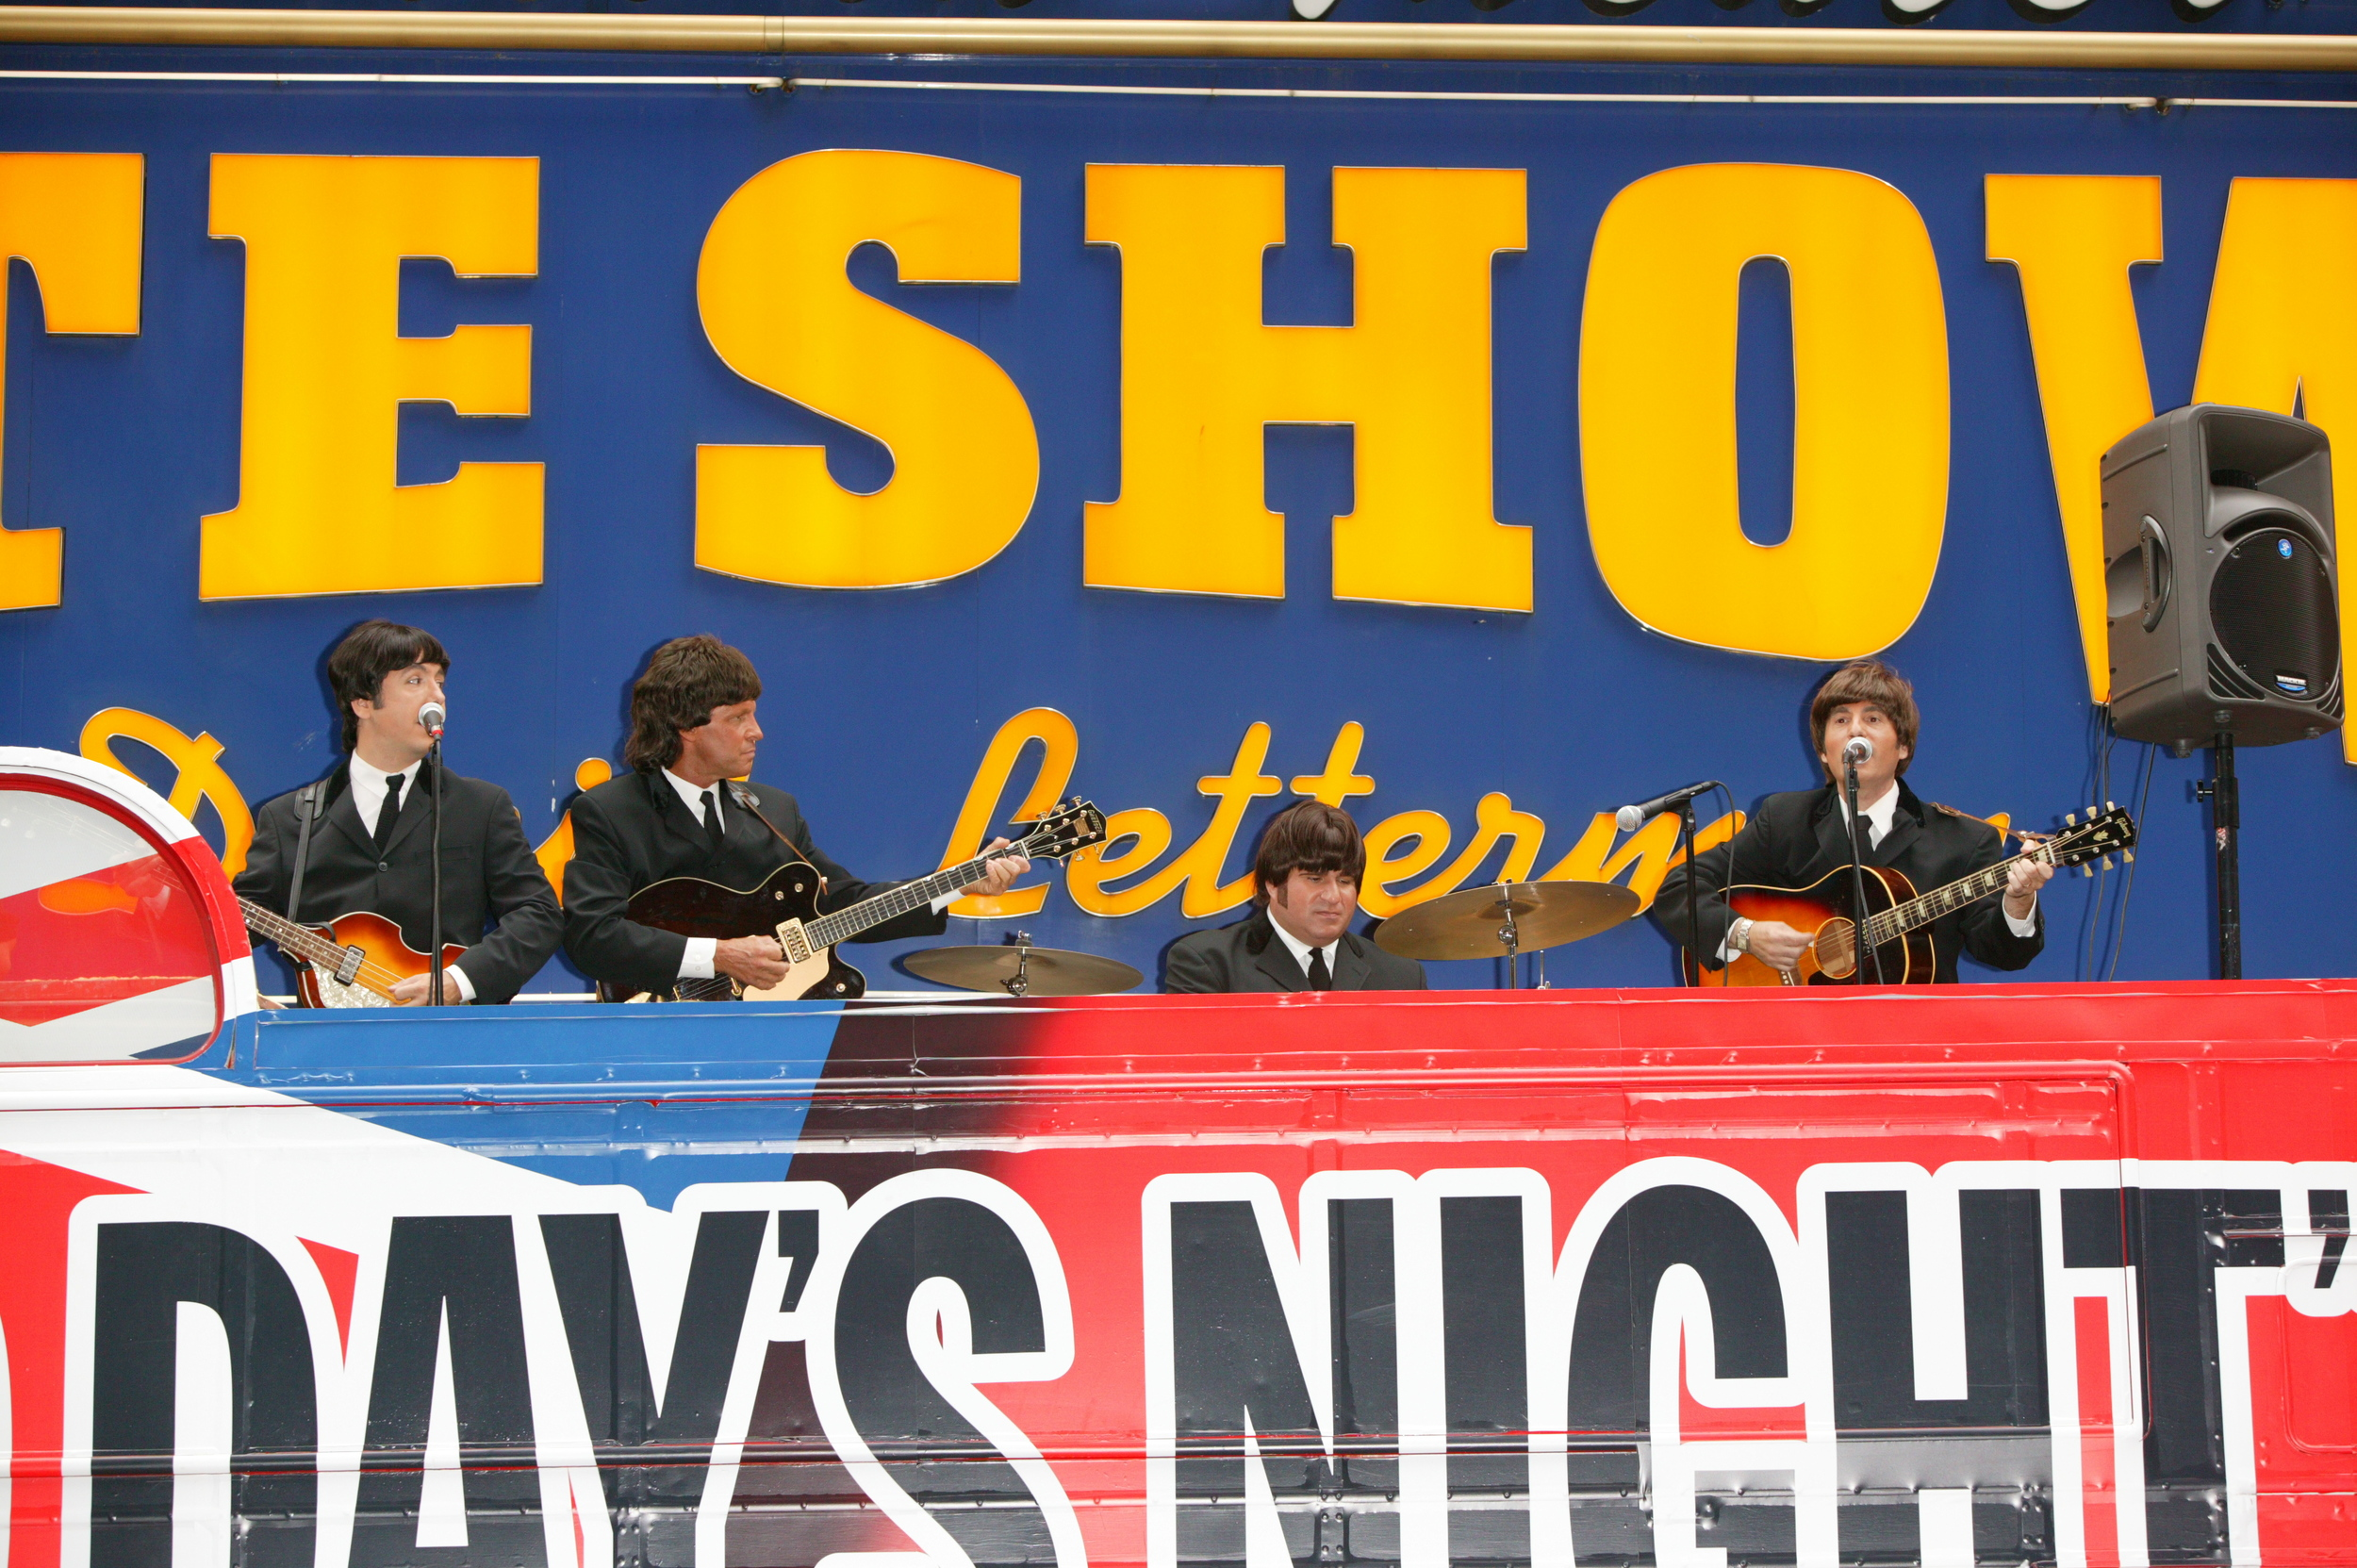 070504MP040_beatles.JPG